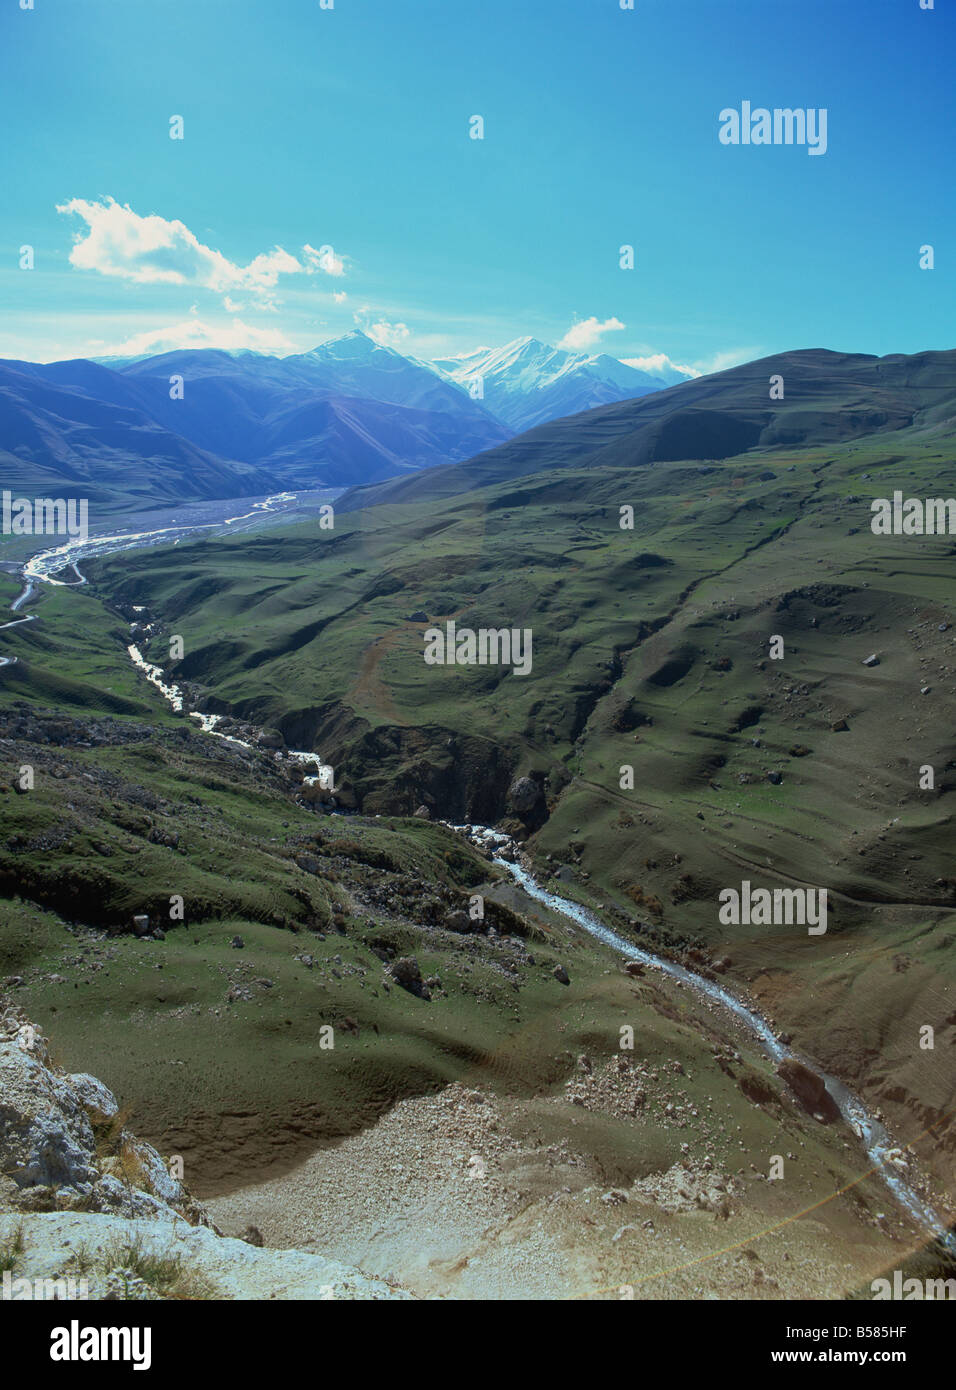 Caucus Mountains, Azerbaijan, Central Asia, Asia - Stock Image